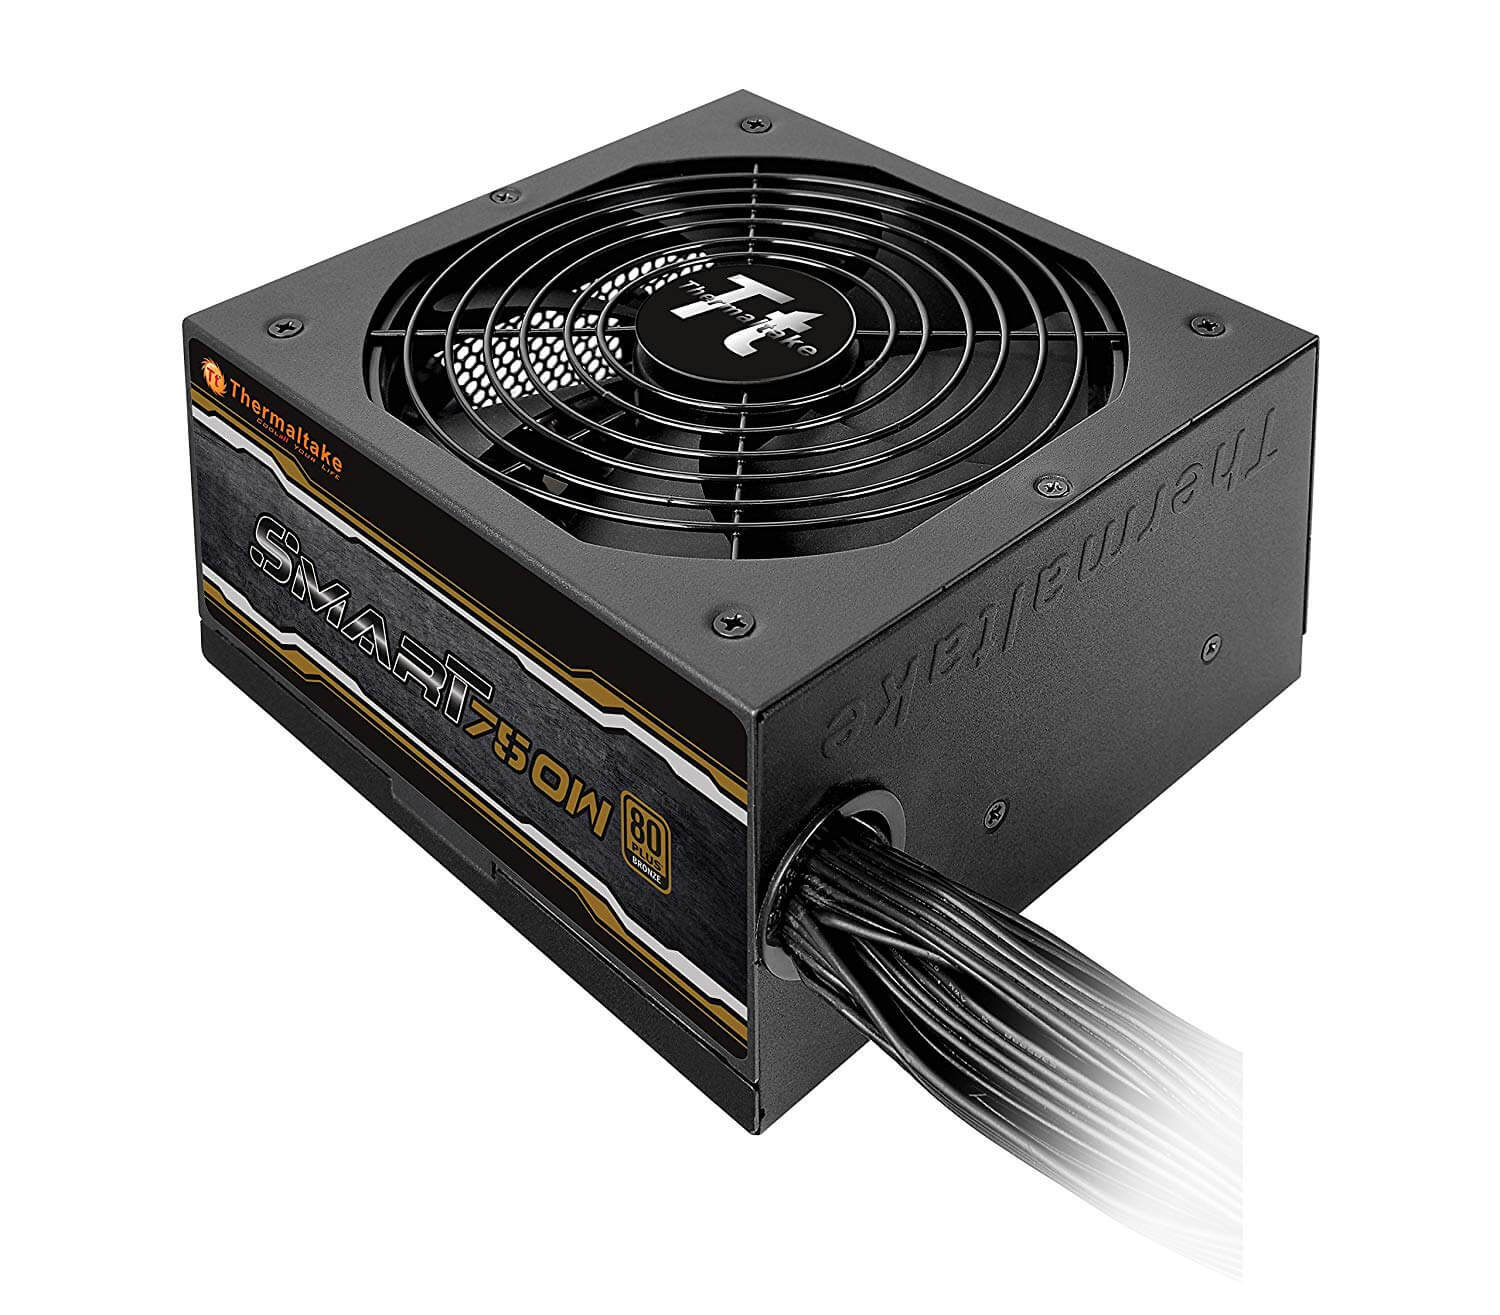 Thermaltake Smart 750W ultra quiet ATX Power Supply